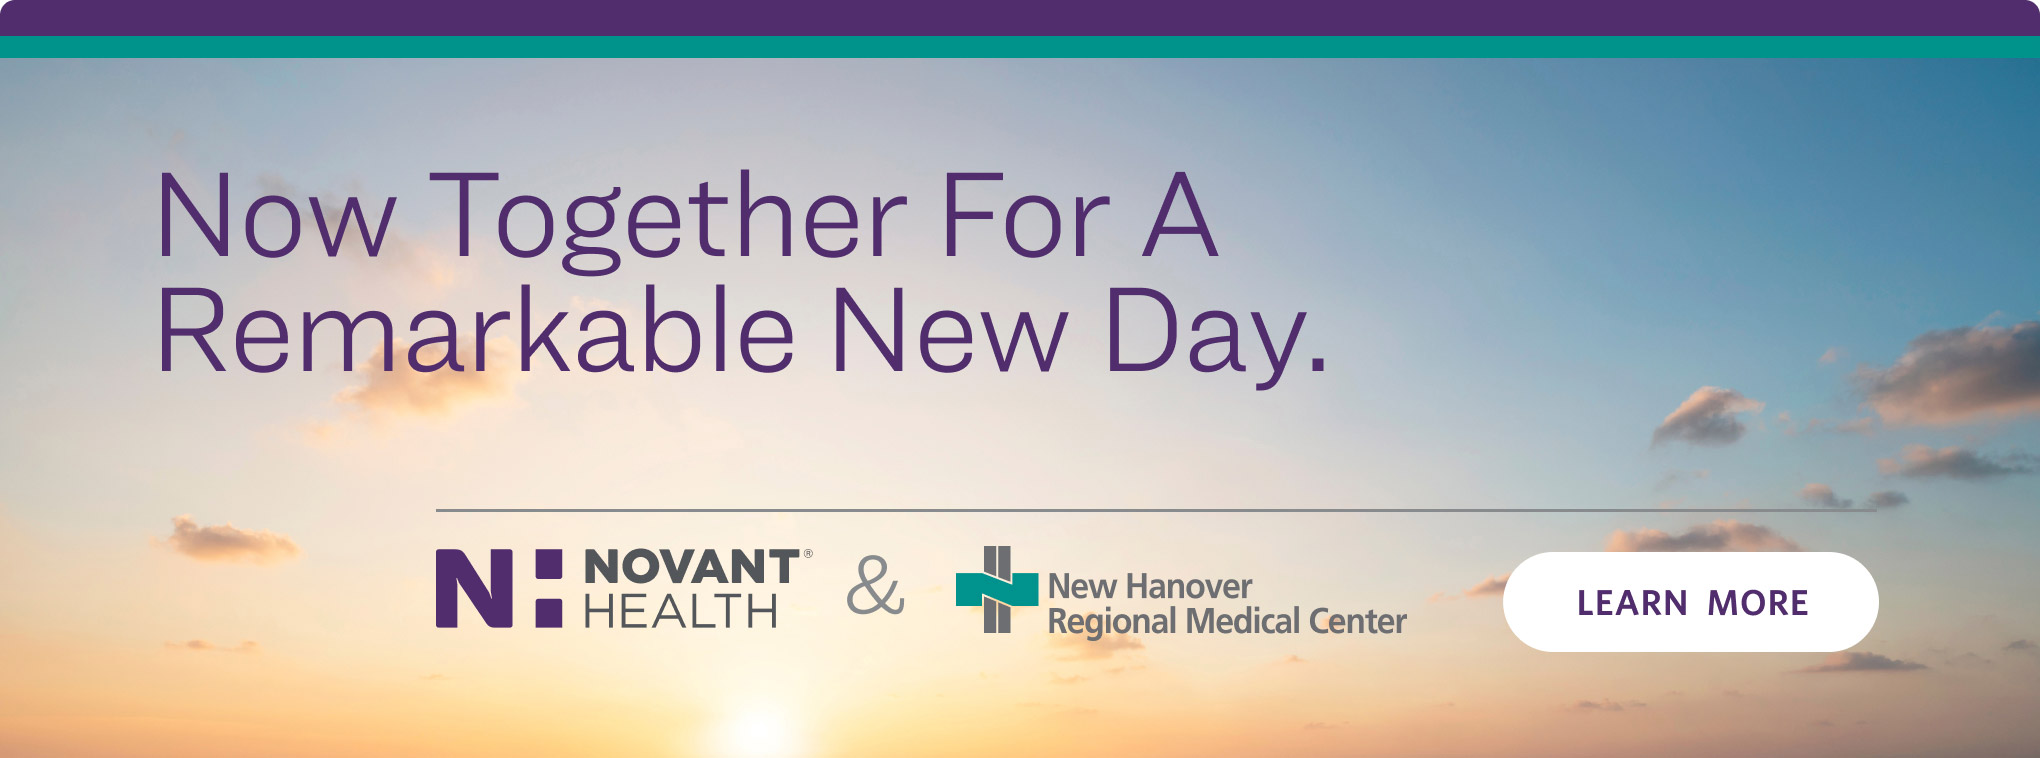 NHRMC Remarkable New Day